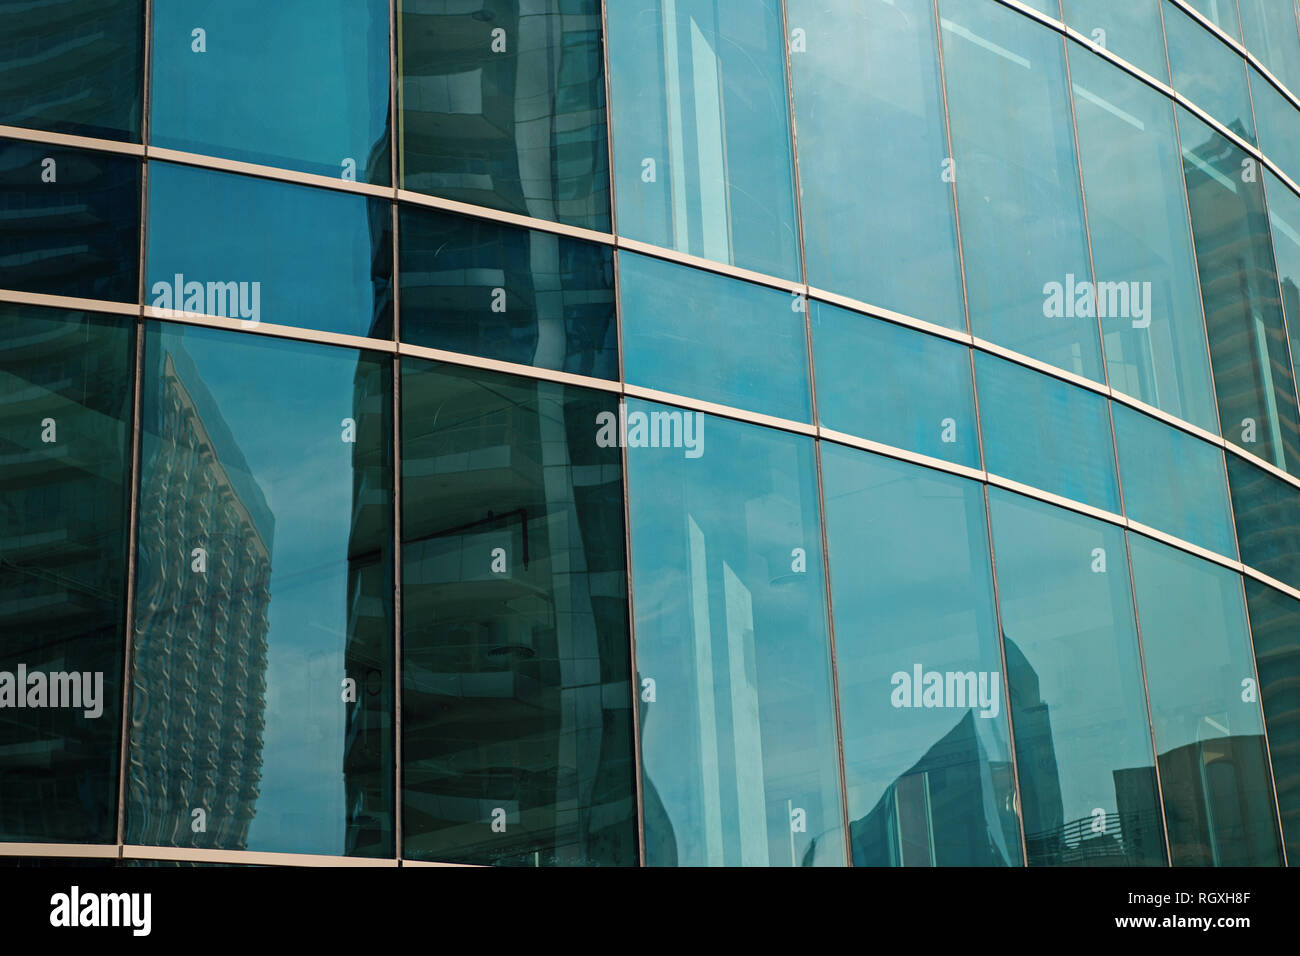 Glass facade panels of office building, architecture background. Construction, structure, house, property. Architecture, design decor exterior Business finance commerce Stock Photo